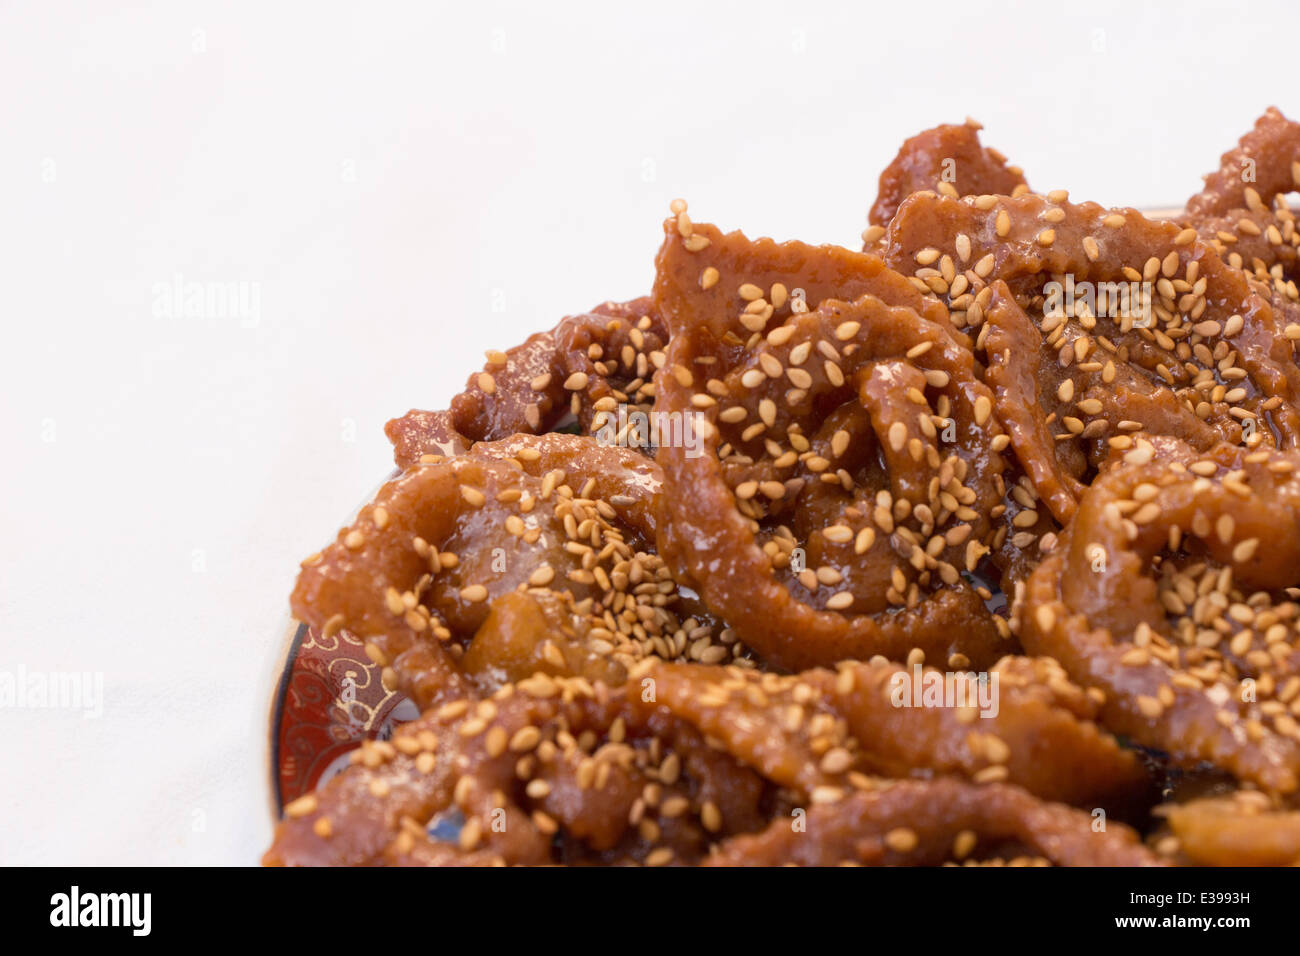 Ramadan Pastries dipped in honey sprinkled with sesame seed - Stock Image